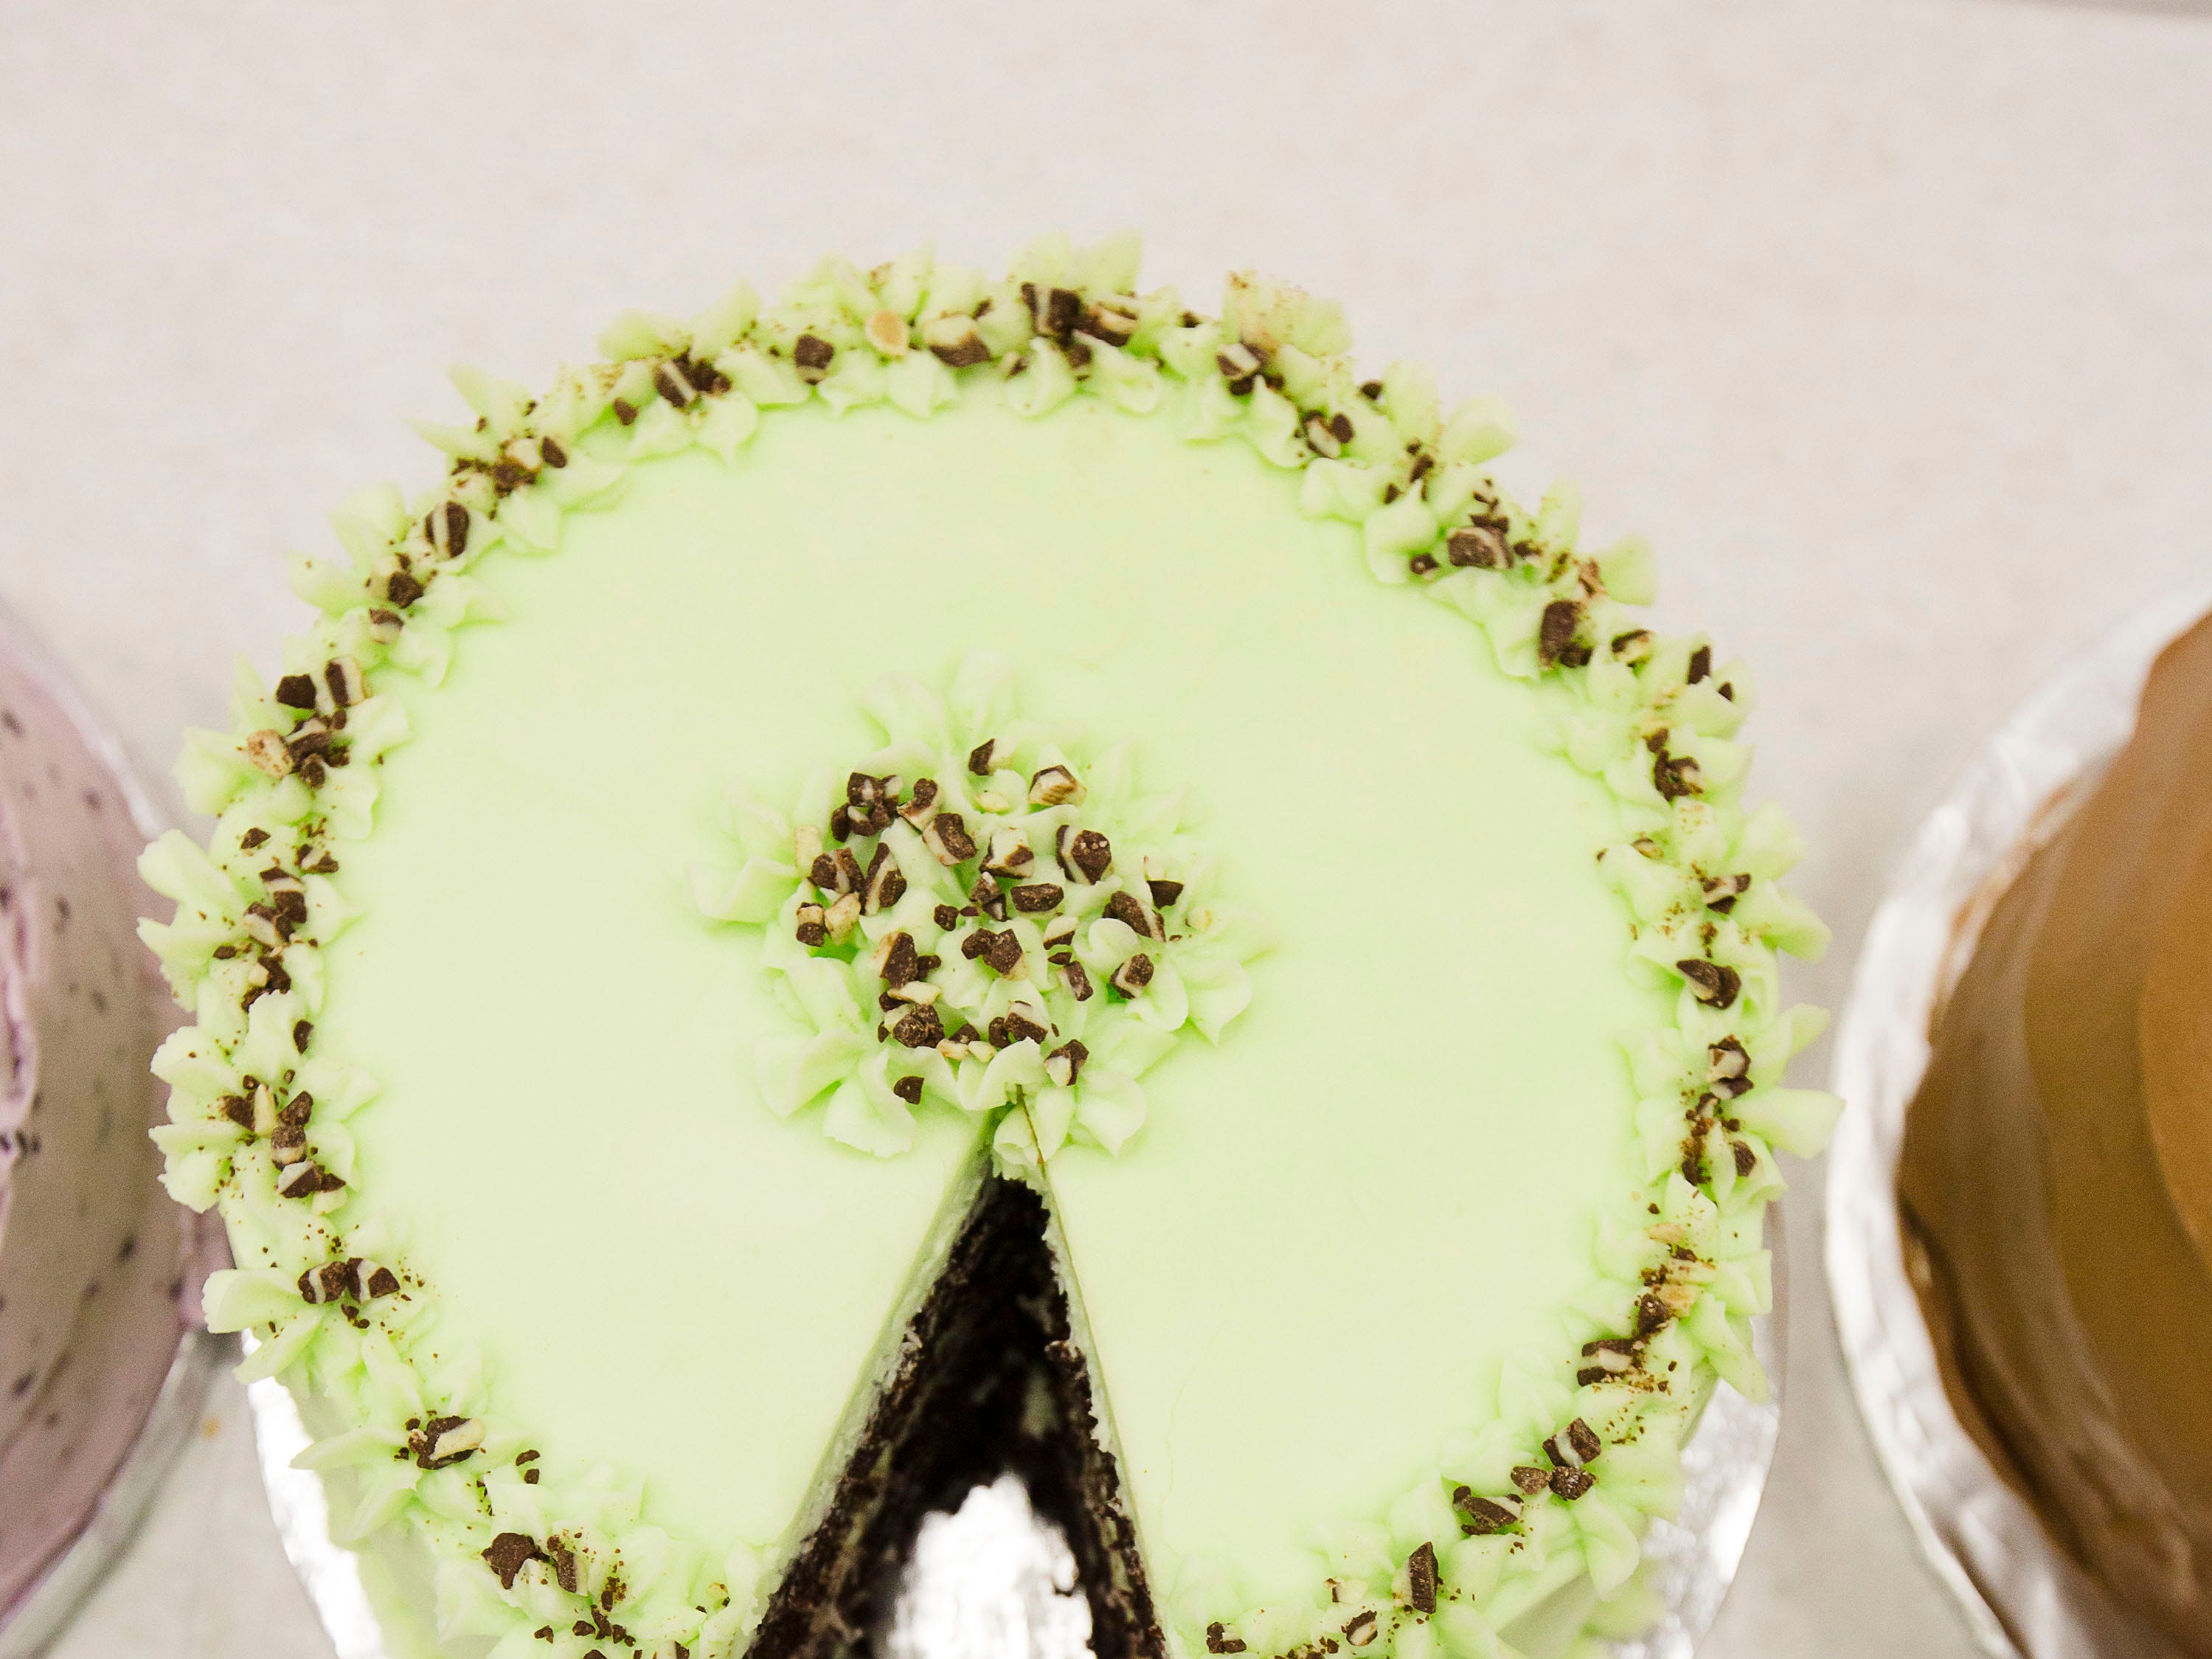 """Choco Mint won first place in the category of """"Favorite Cake"""" at Tuesday's taste testing at the Kentucky State Fair on  August 14, 2018."""